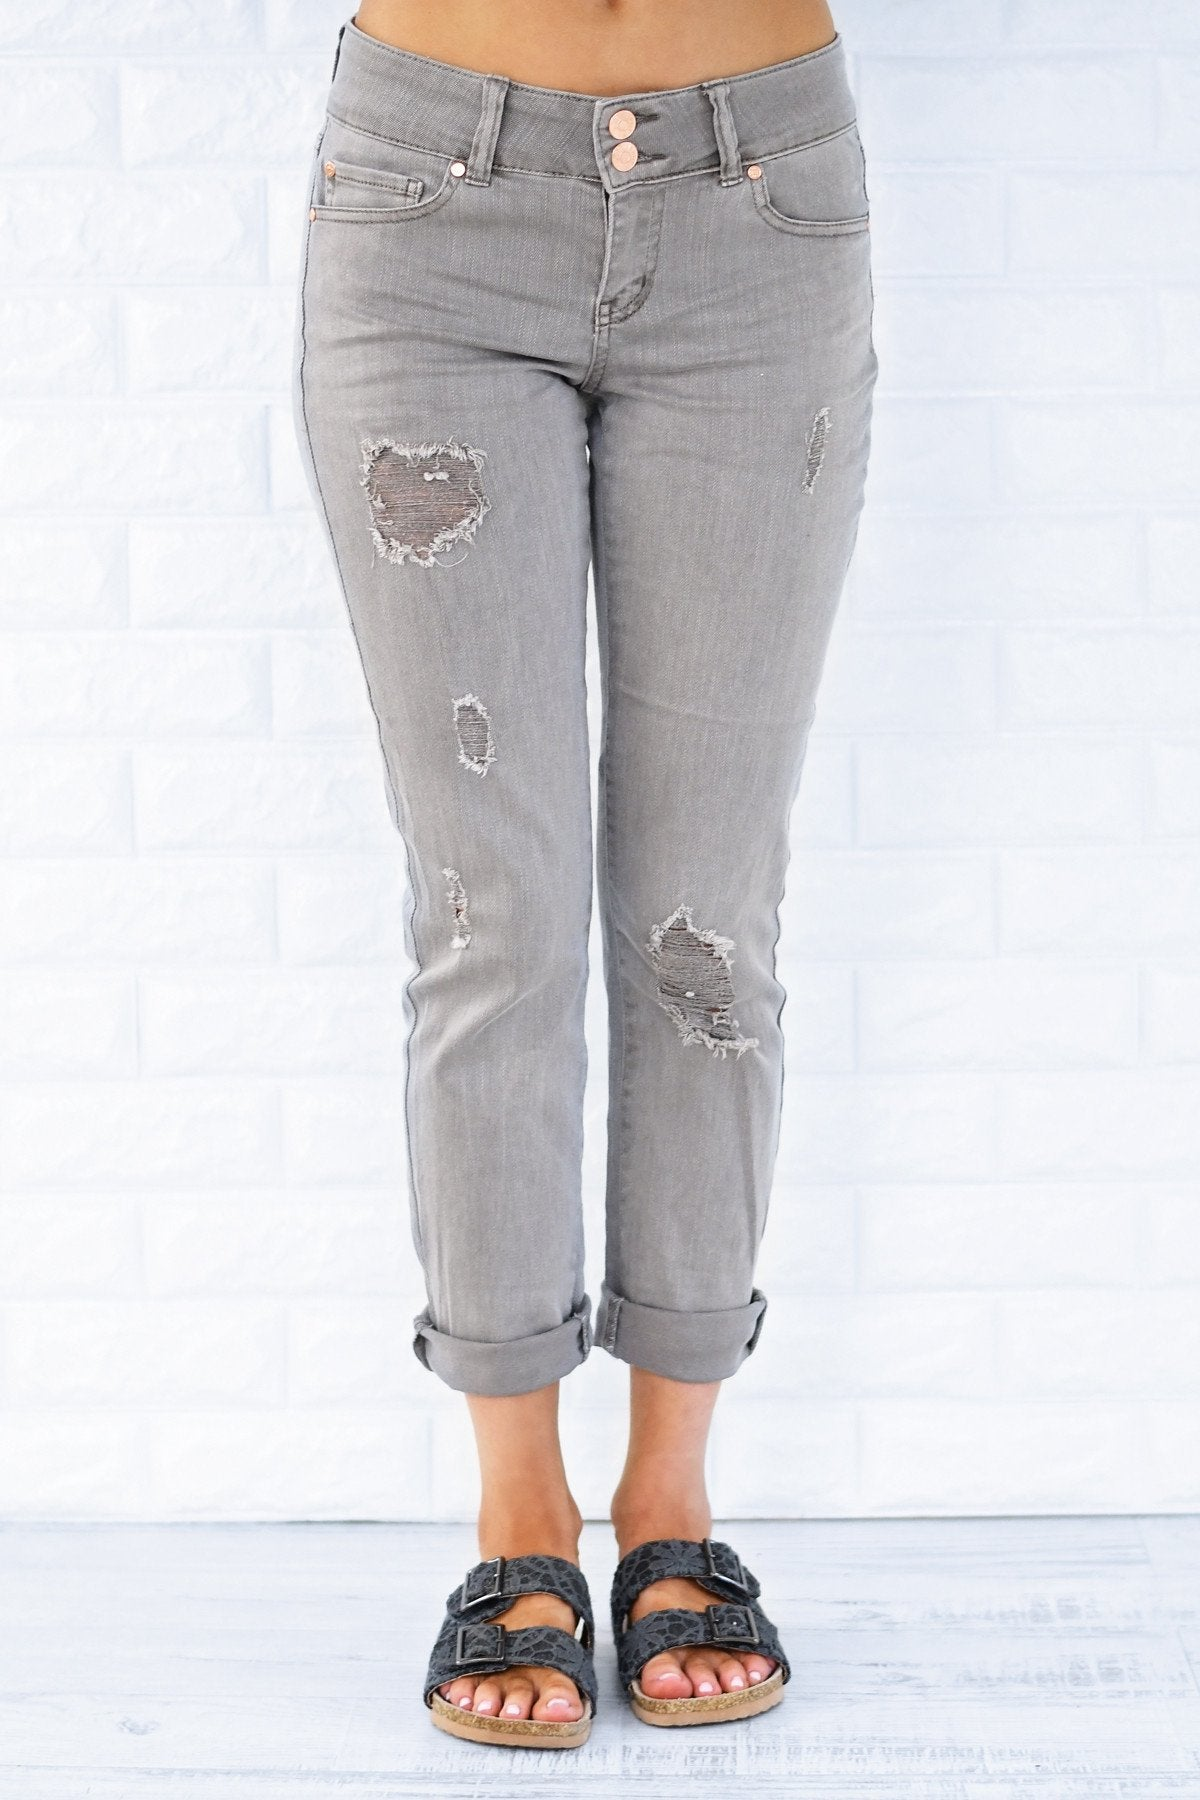 Calypso Jeans - The Boyfriend Effect Grey